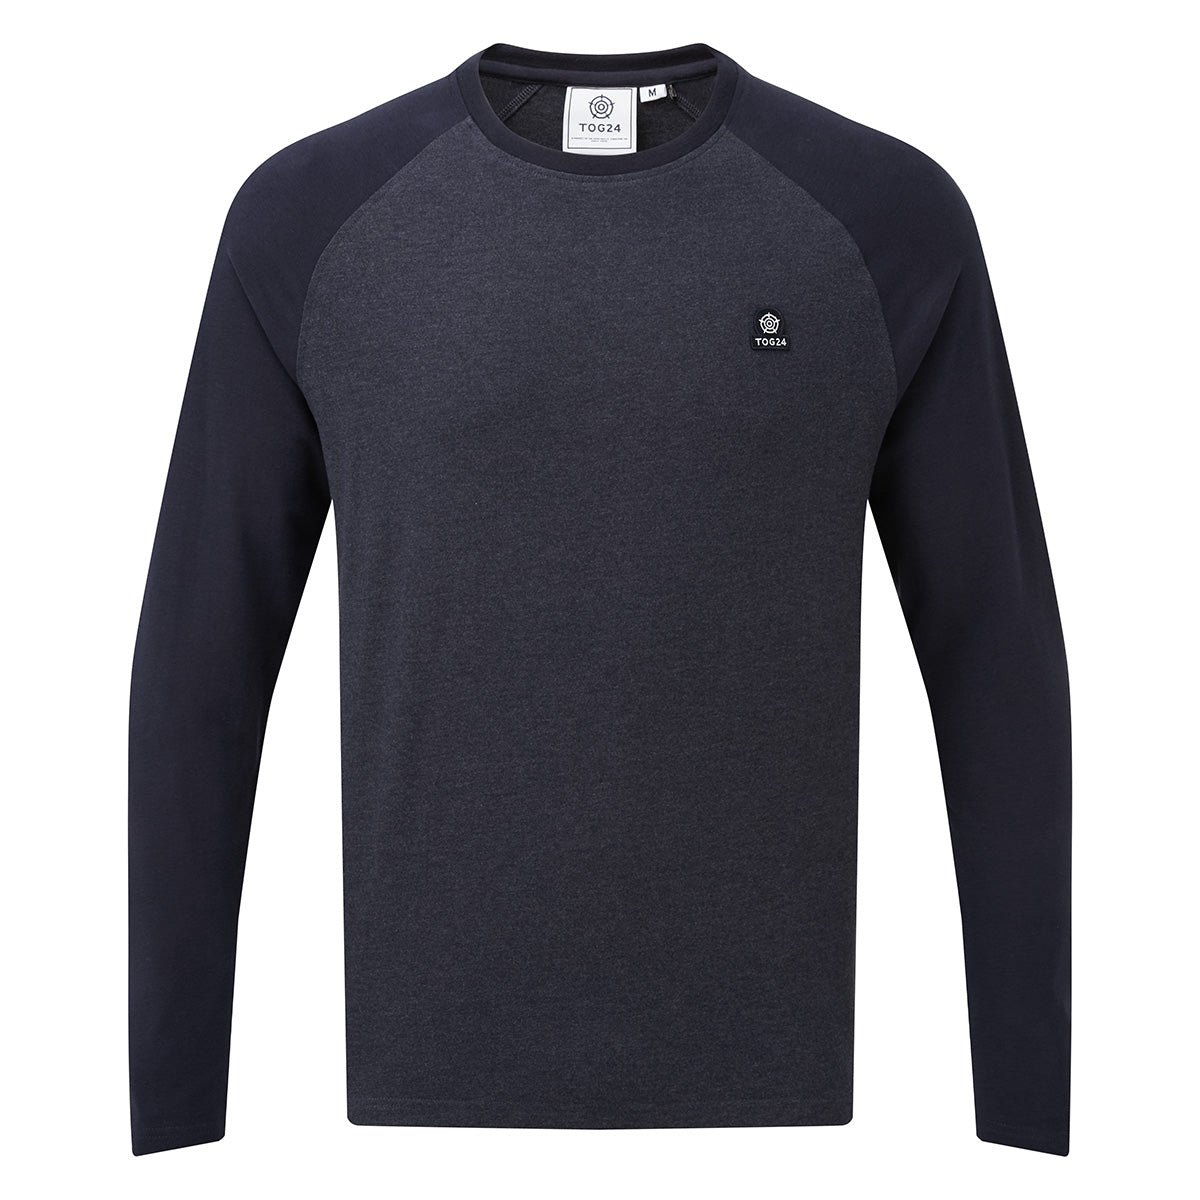 Haxby Mens Long Sleeve Raglan T-Shirt - Navy Marl/Navy image 4